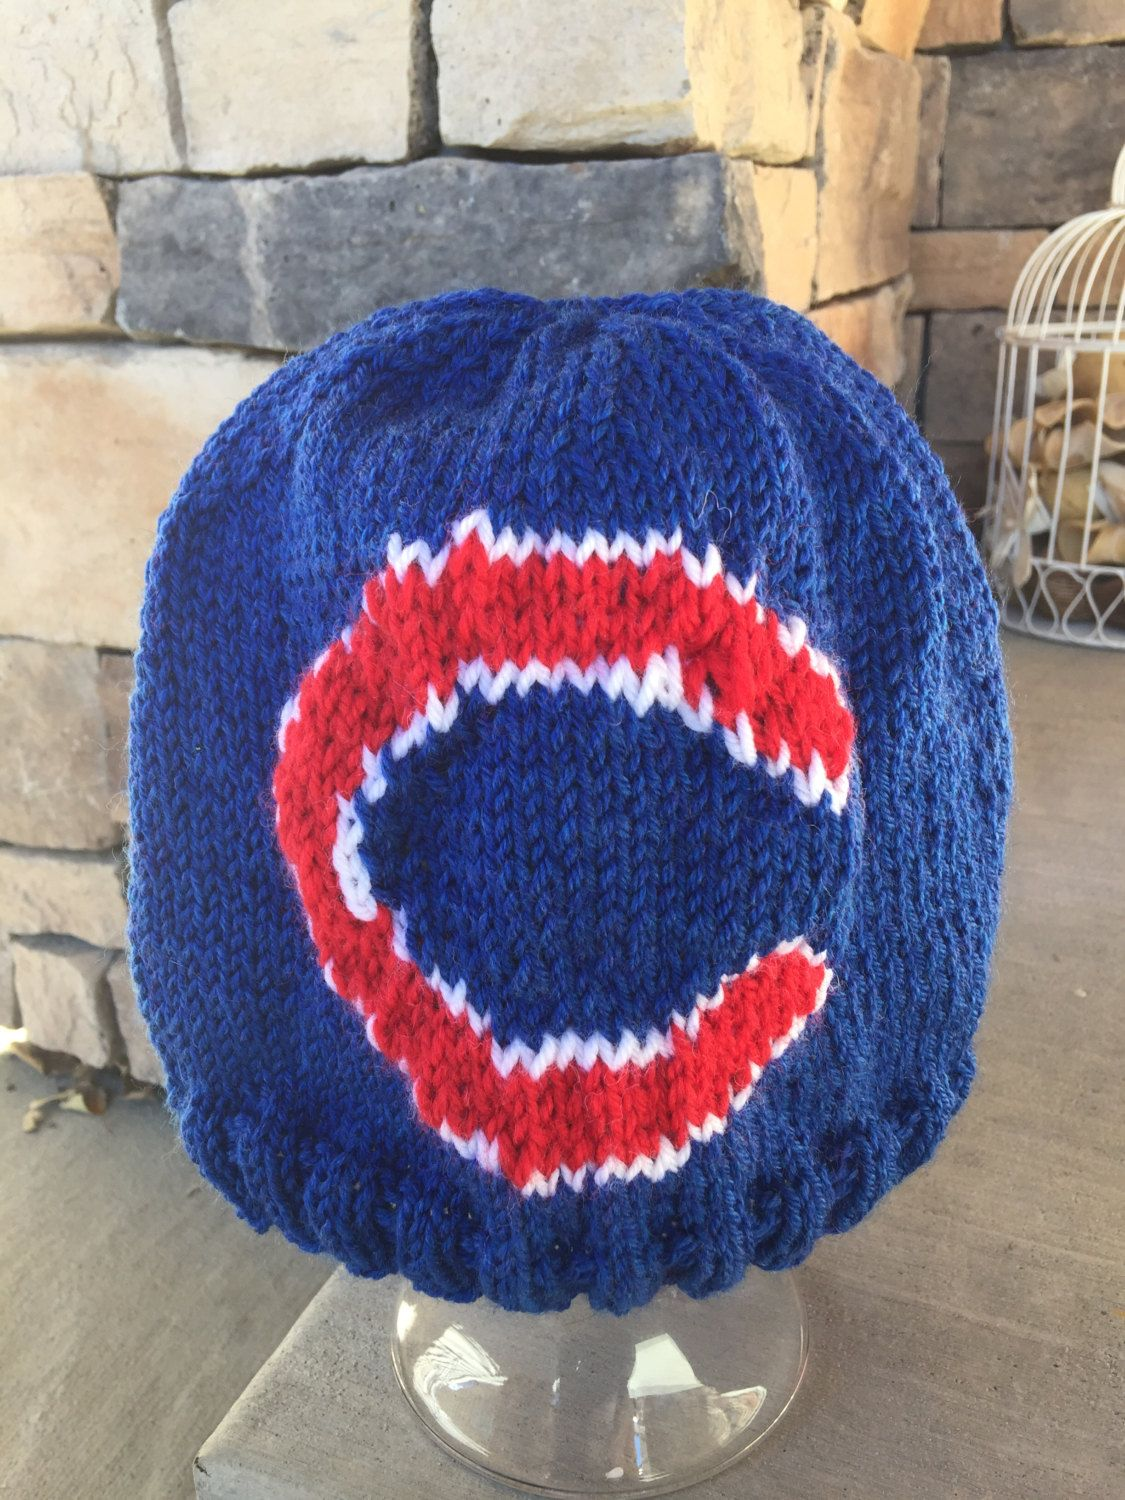 ea281292c2118 Chicago Cubs Logo Beanie Hat PATTERN - Ribbed Brim Intarsia Knit in Rows by  astraknots on Etsy